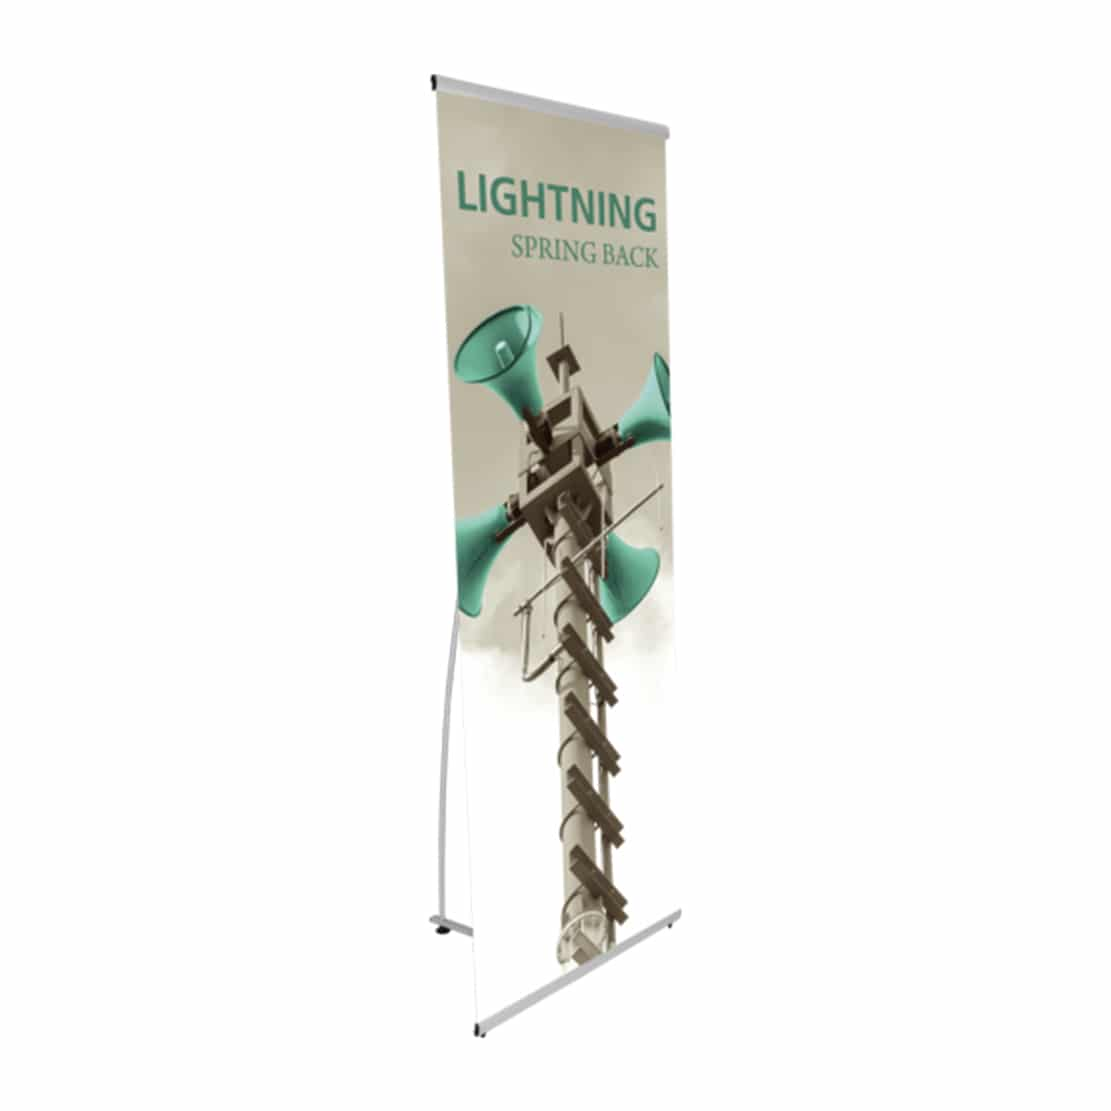 lightning banner stand display quarter view with graphic